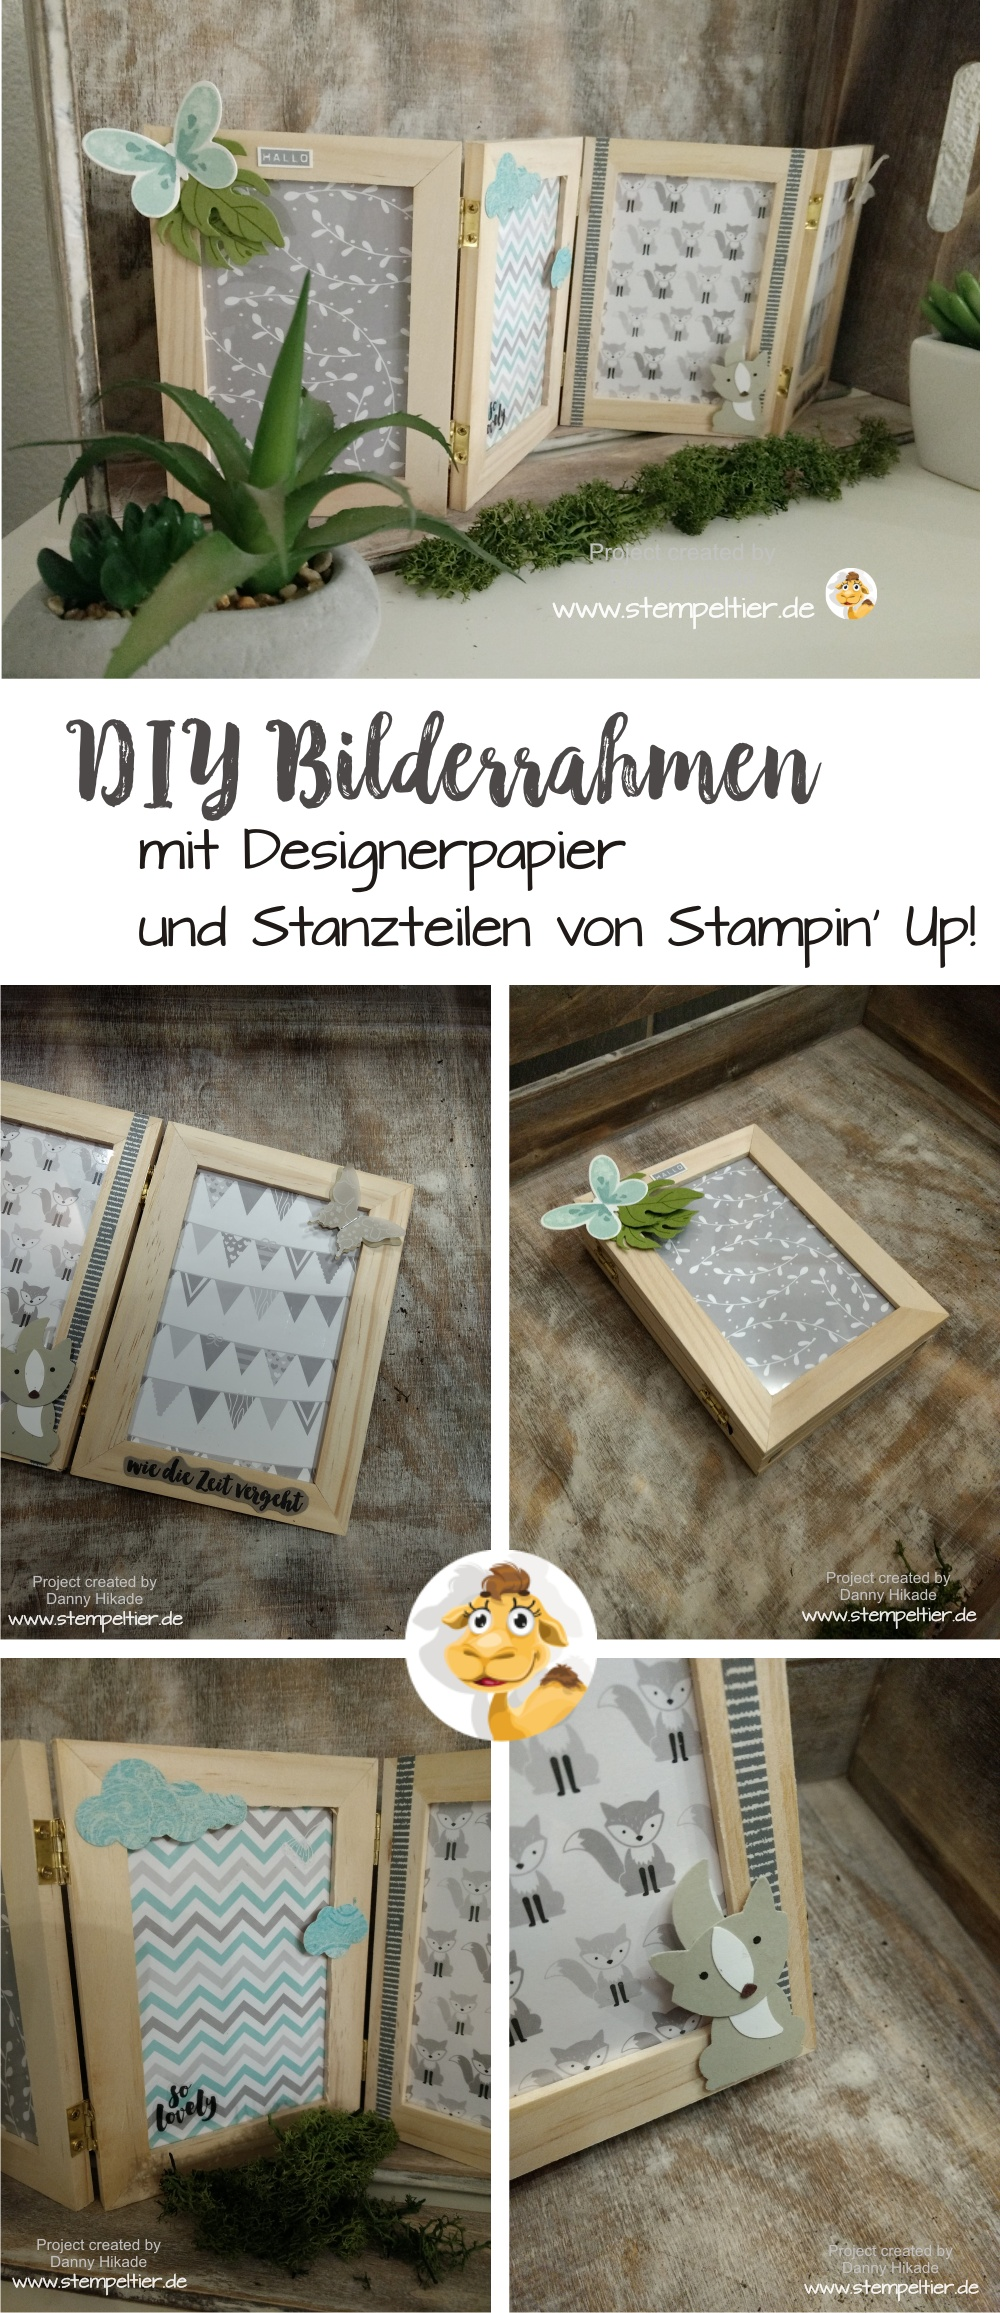 stampin up blog stempelnd durchs jahr april 3D home deco frame bilderrahmen diy